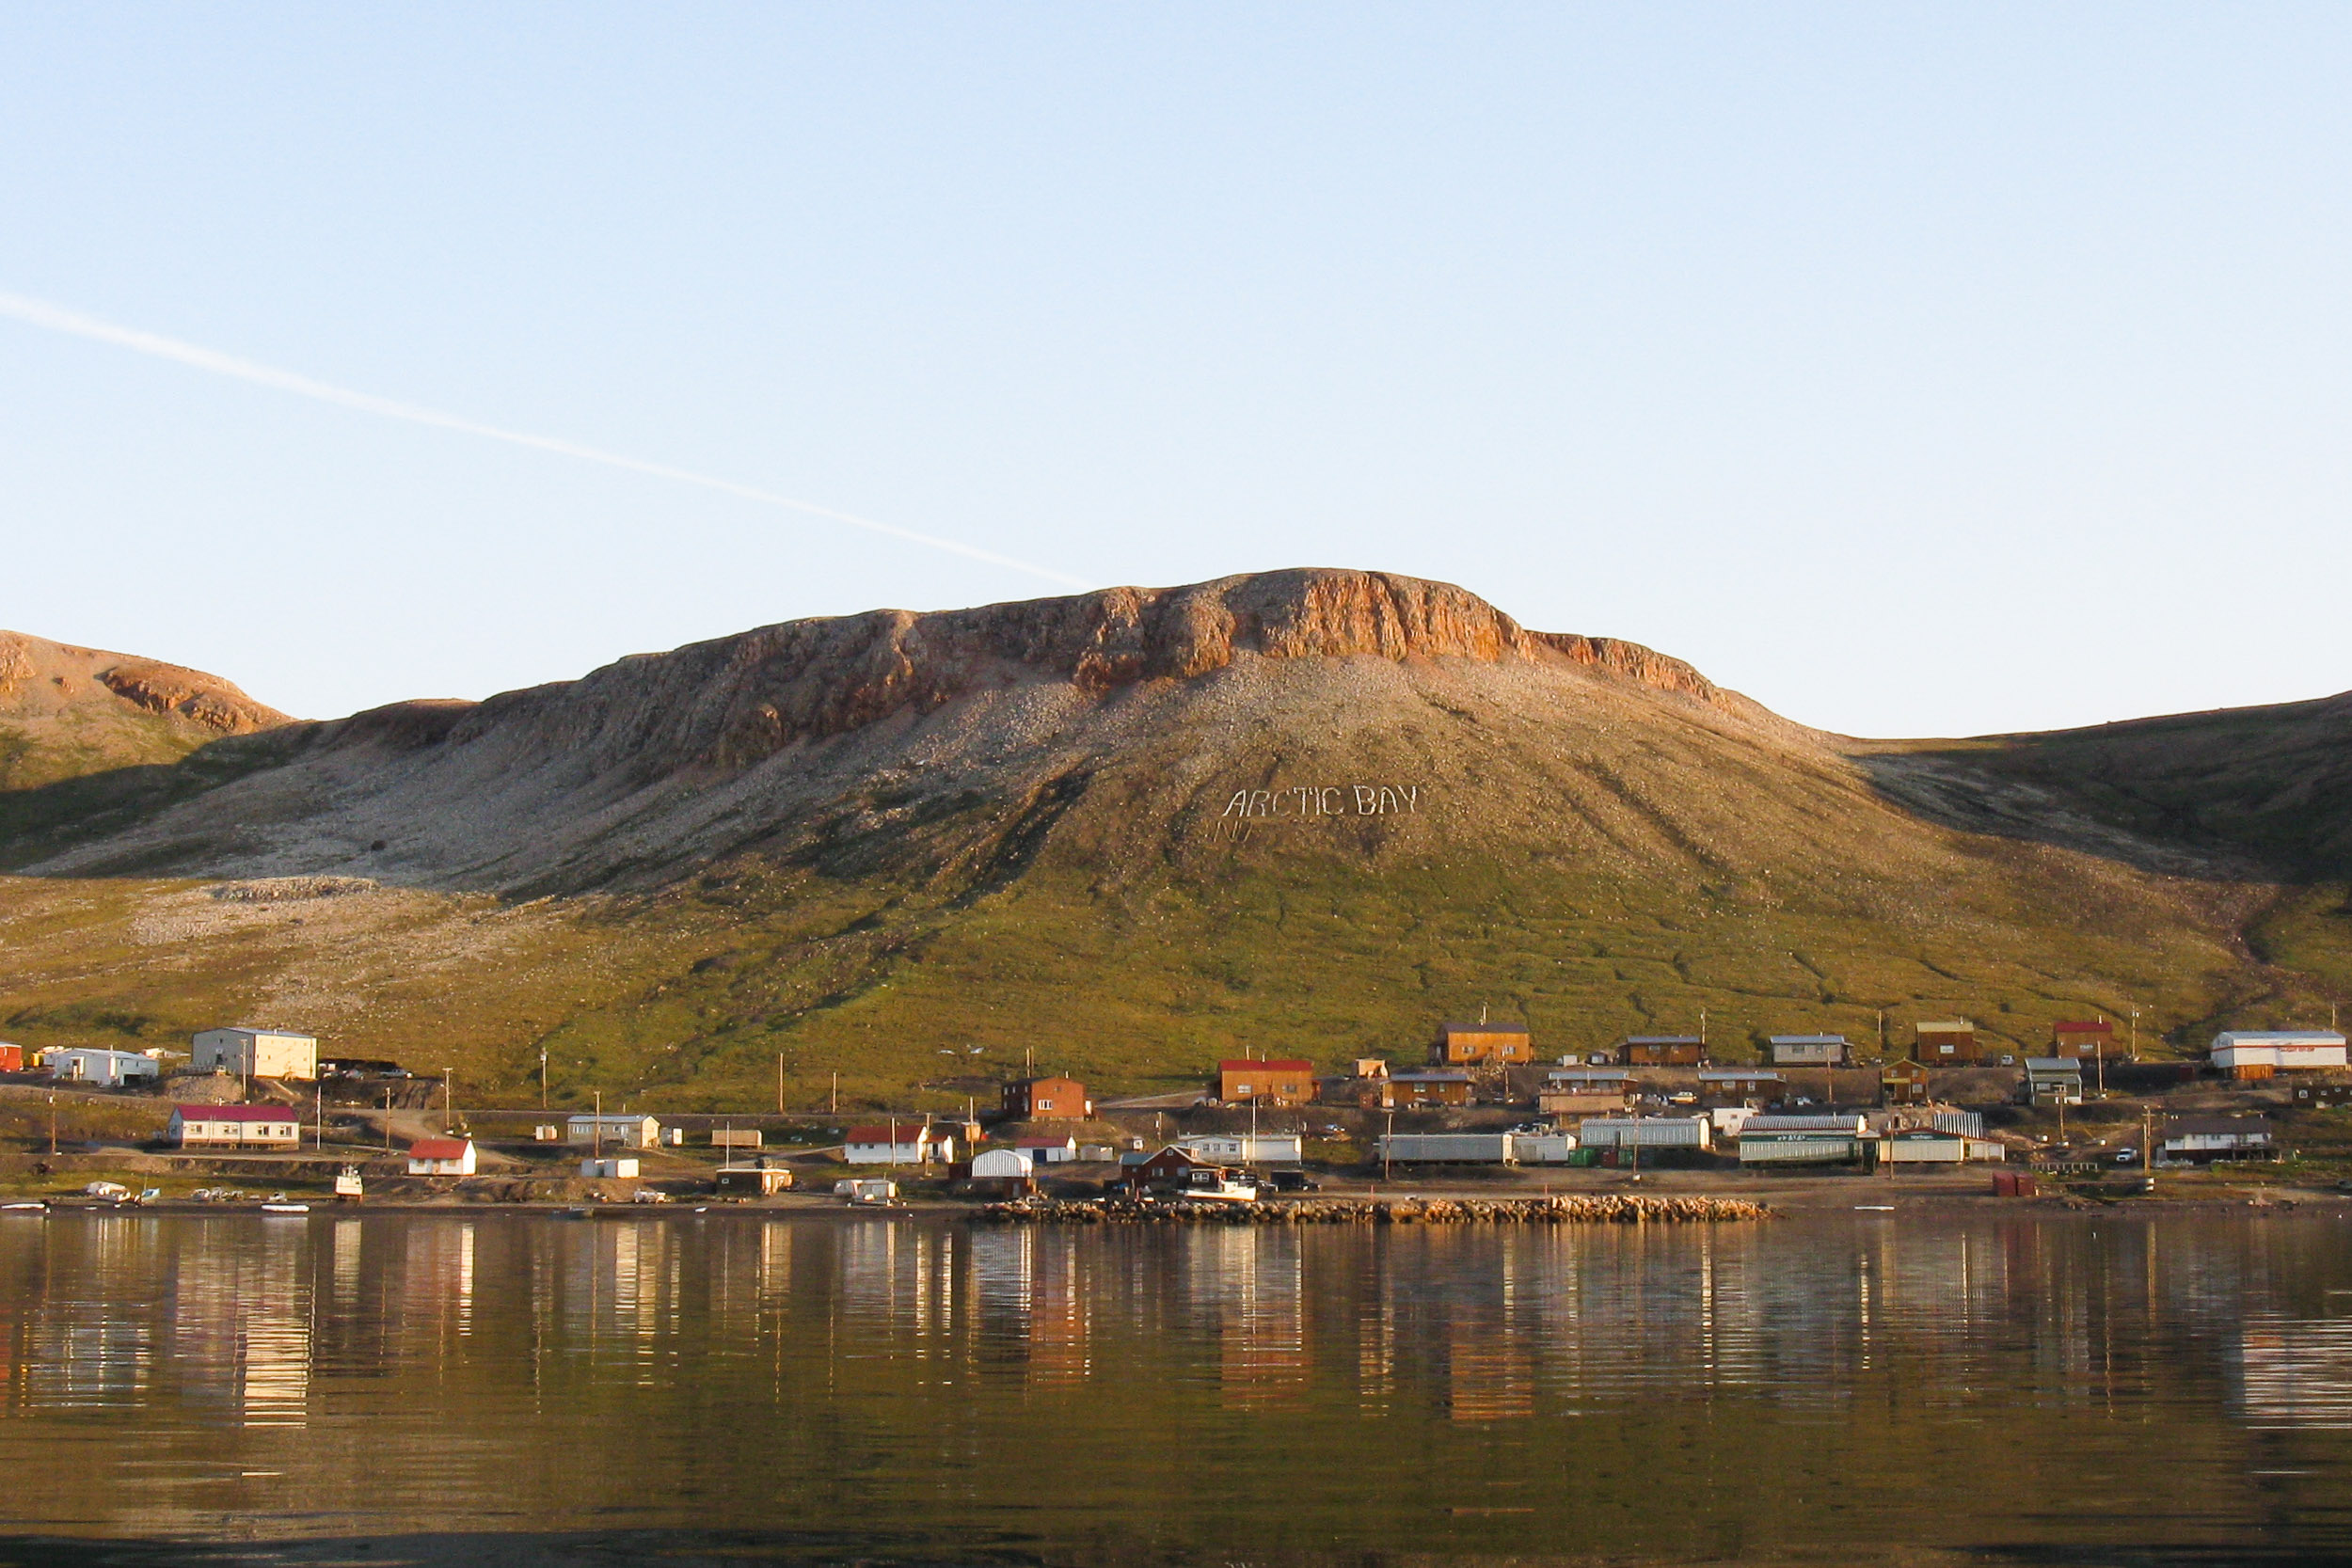 Evening view of Arctic Bay settlement, Borden Peninsula, District of Franklin, Canada.